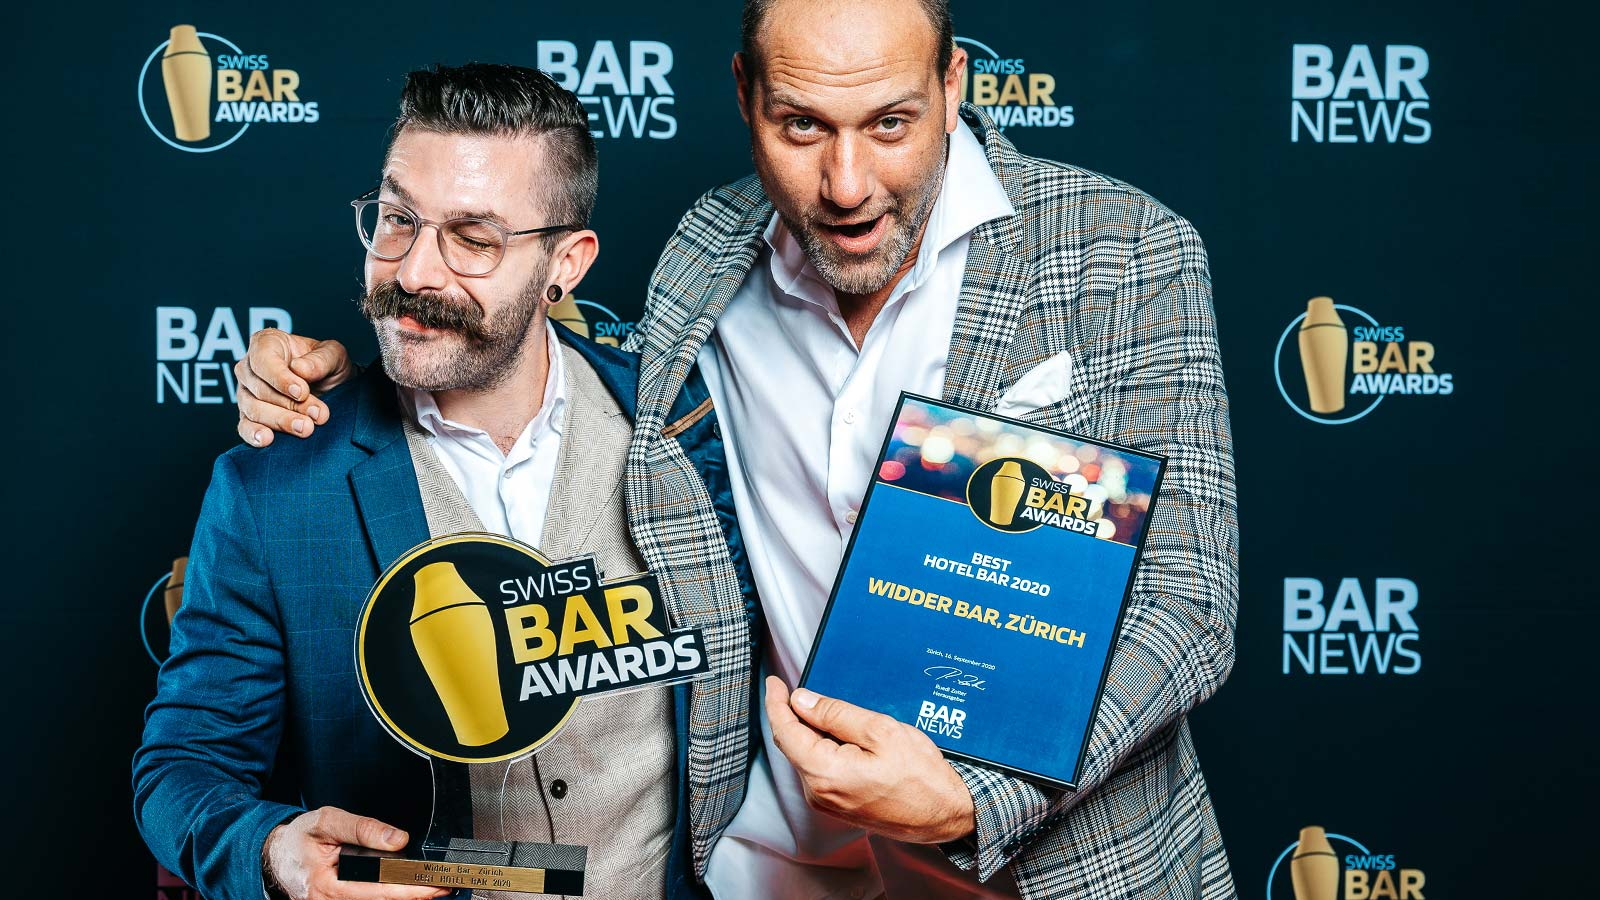 SWISS BAR AWARDS